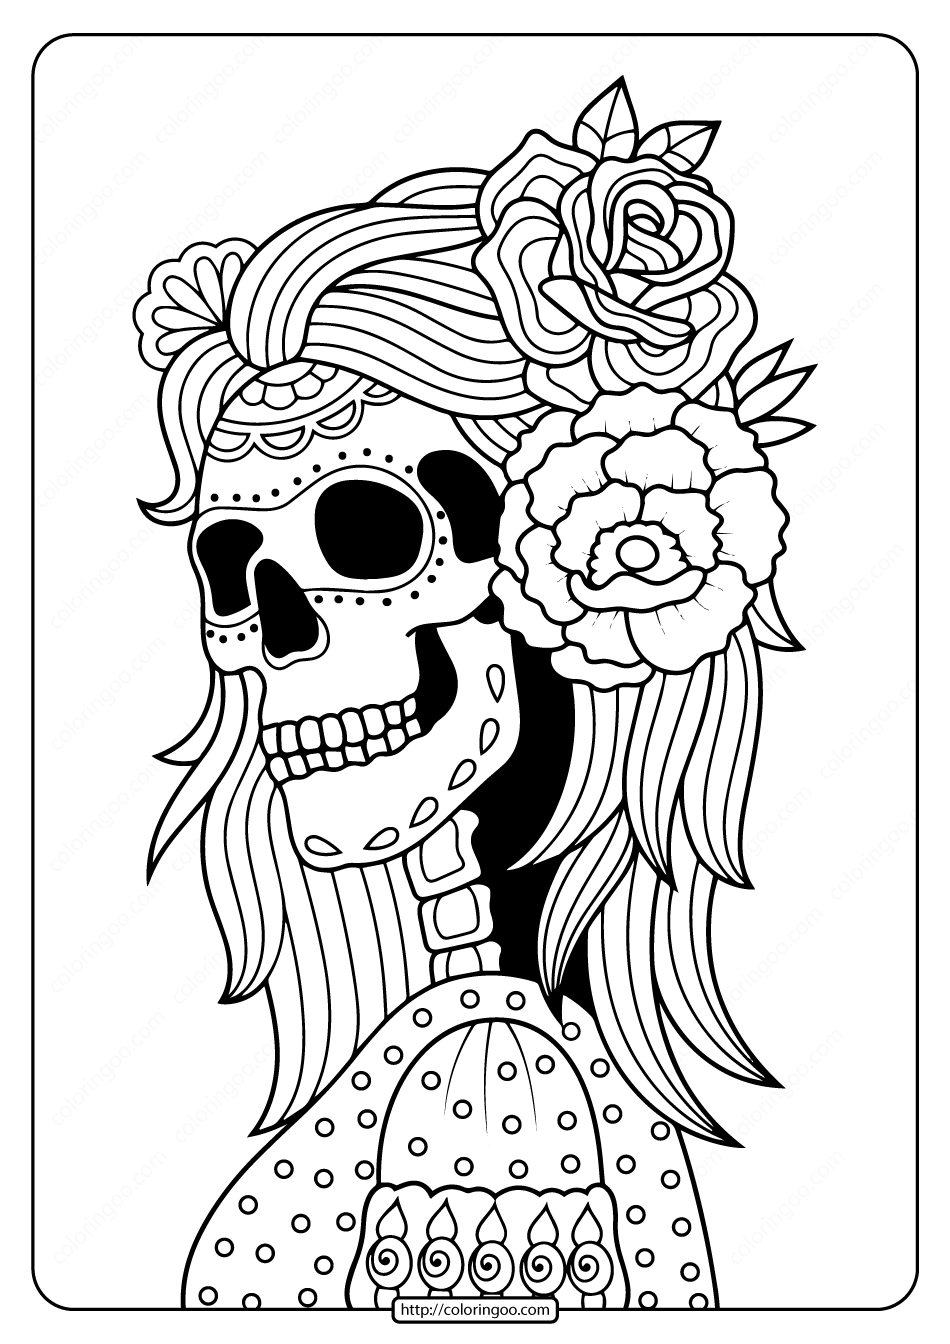 Printable Day of the Dead Adult Coloring Pages 02